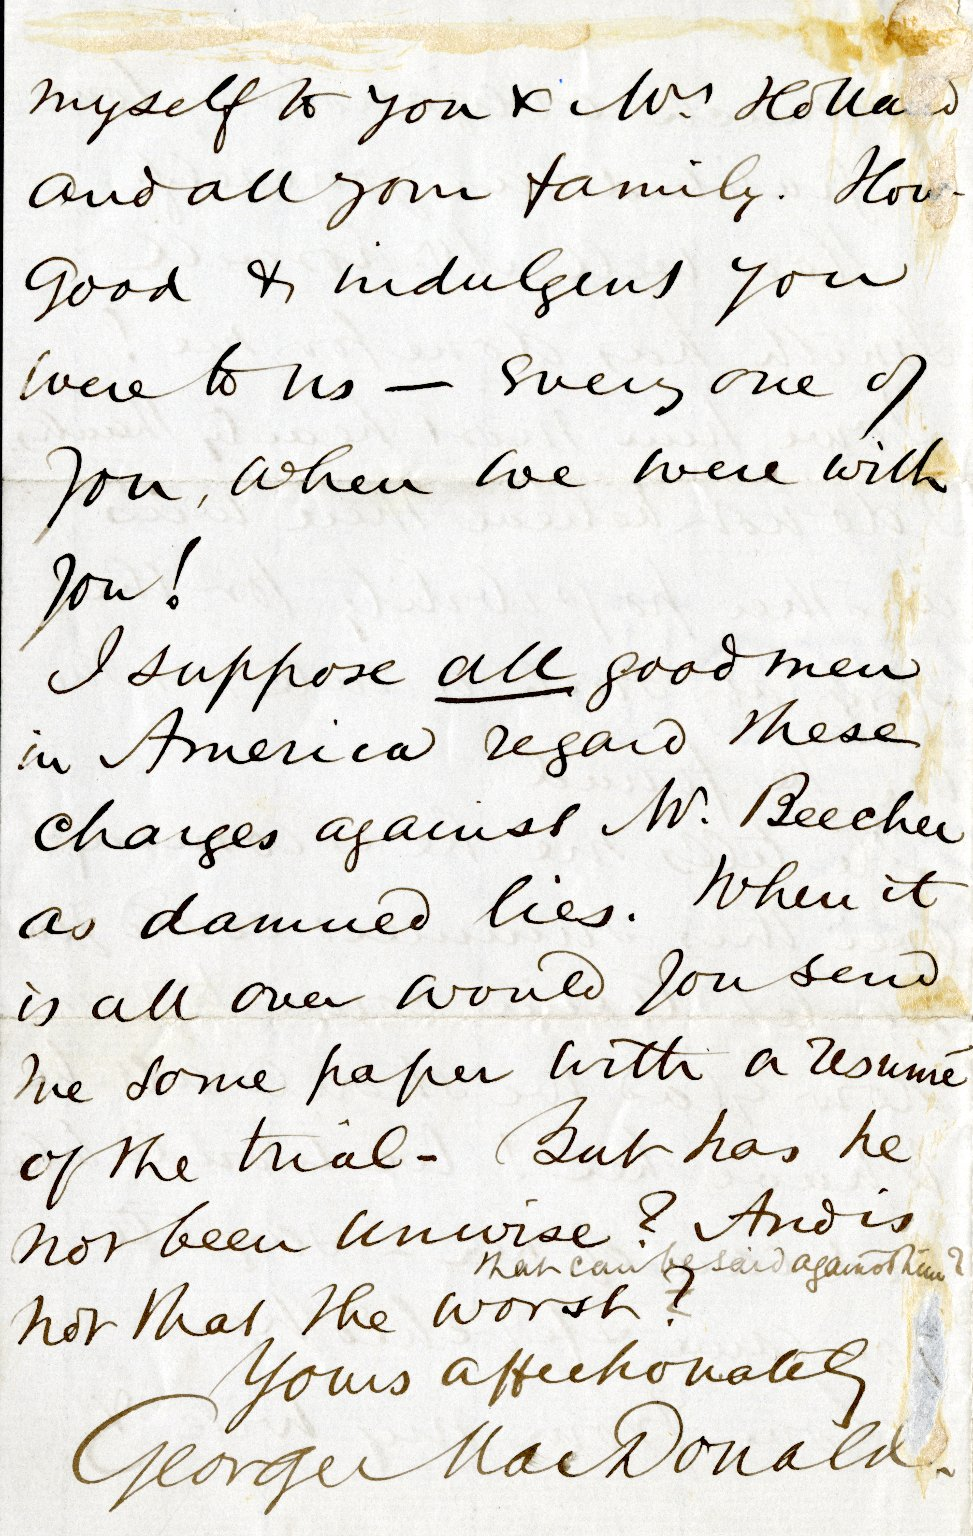 MacDonald, George. ALS, 4 pages, March 14, 1875